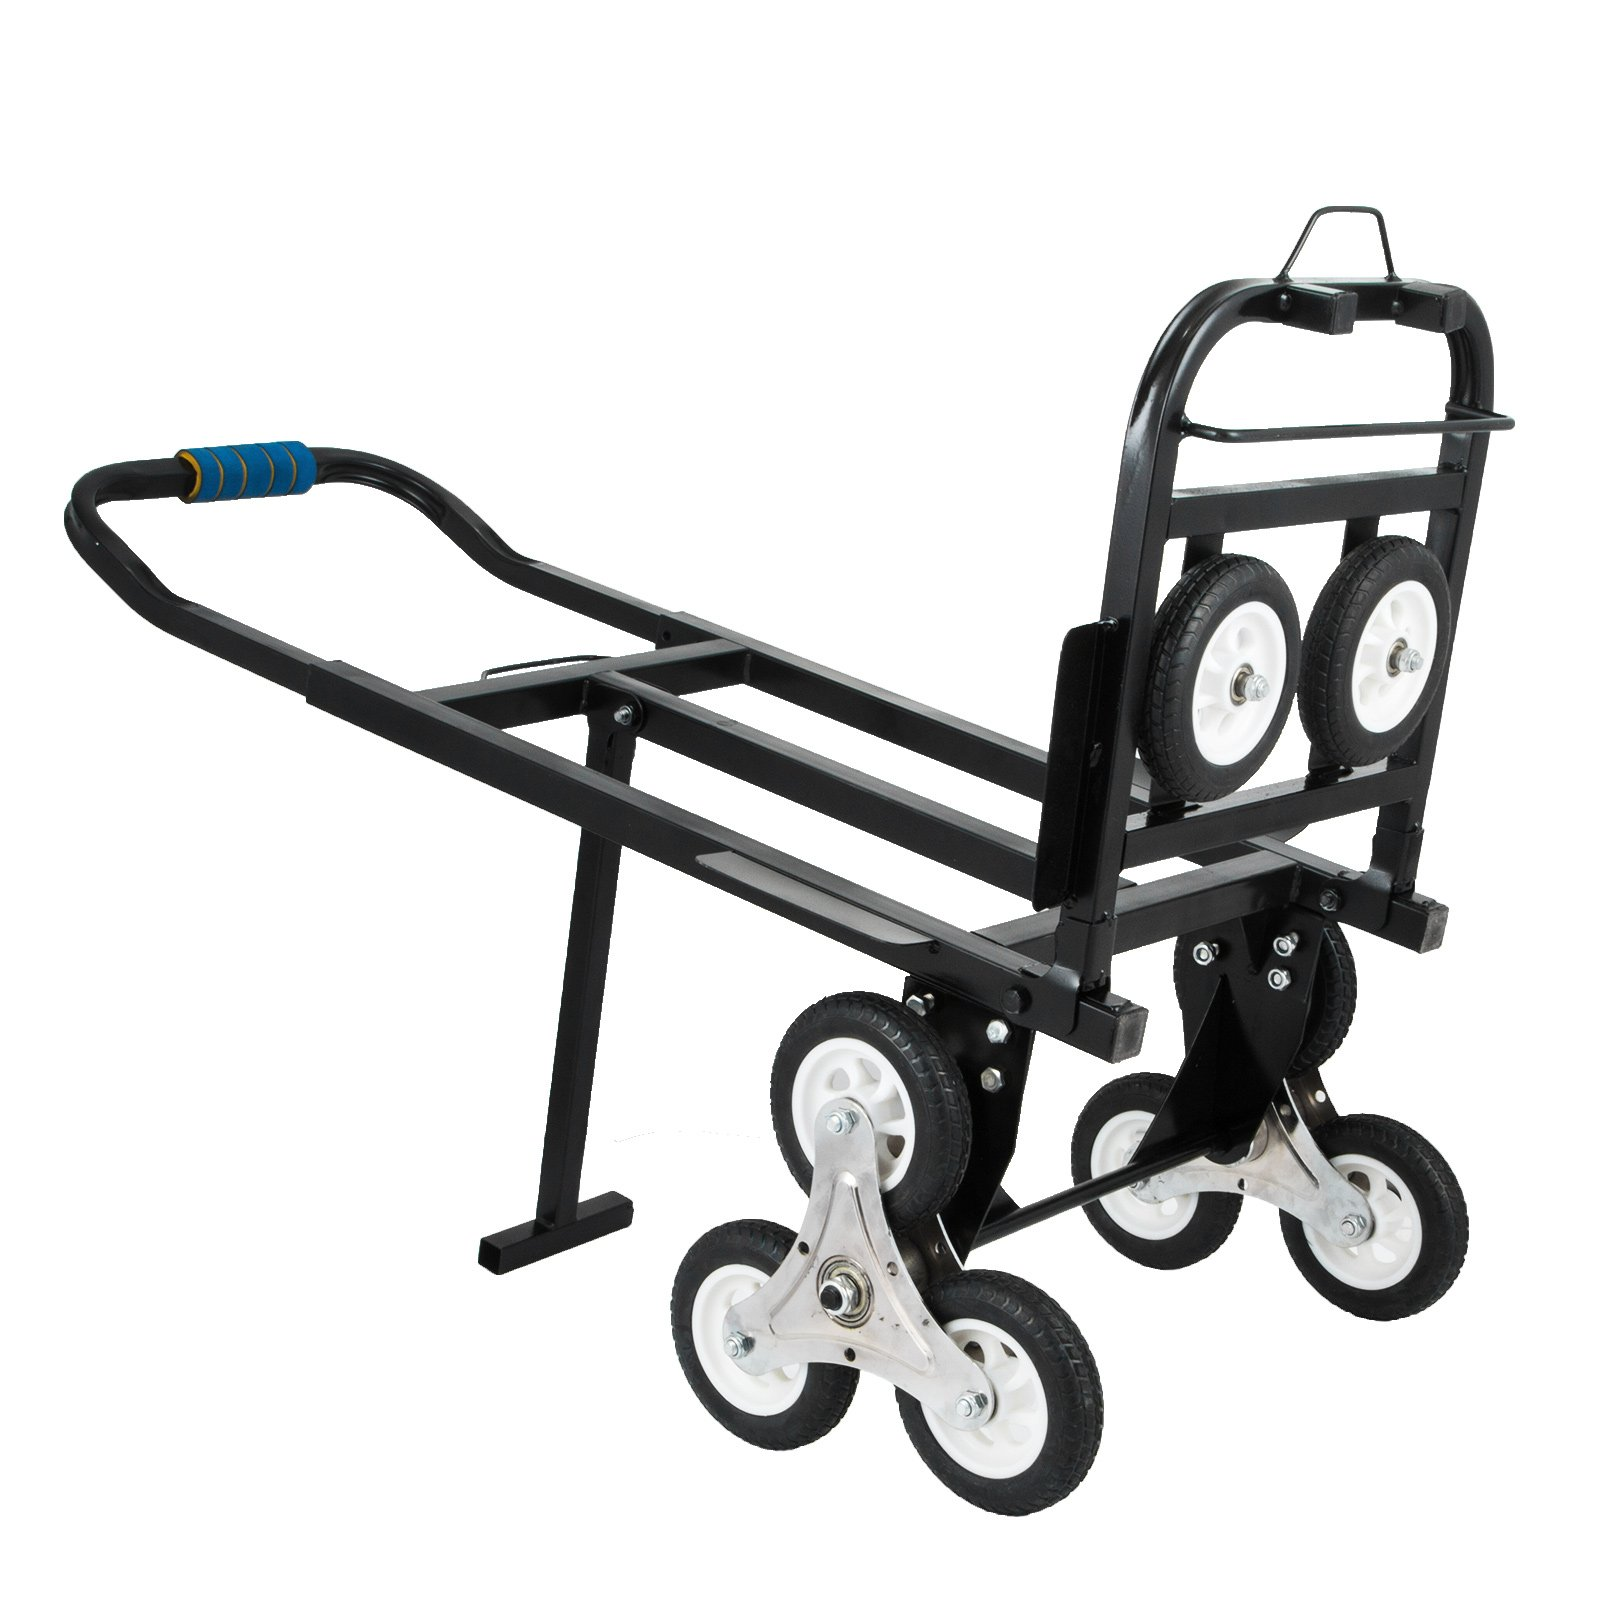 Cheap Stair Climbing Hand Truck Rental, find Stair Climbing